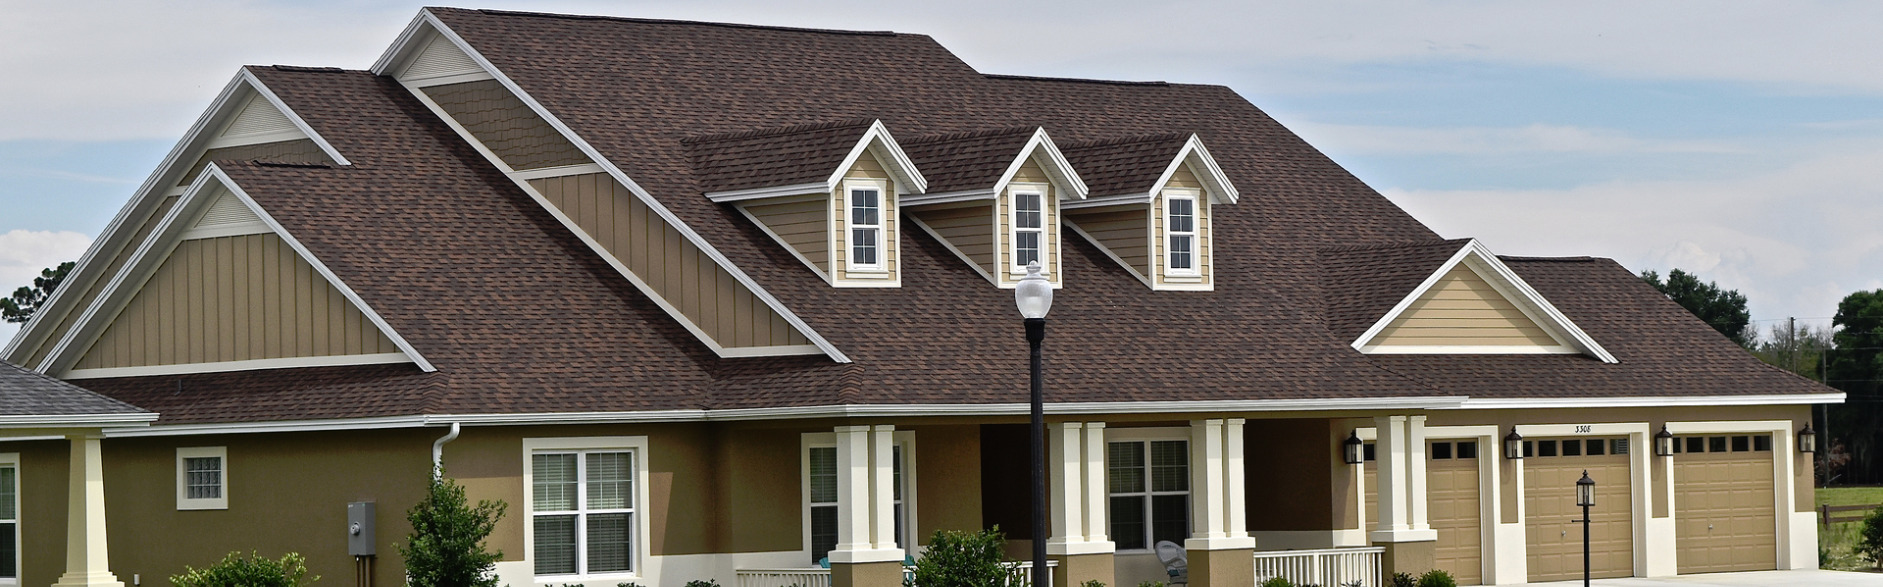 High Quality Knoxville Roofing